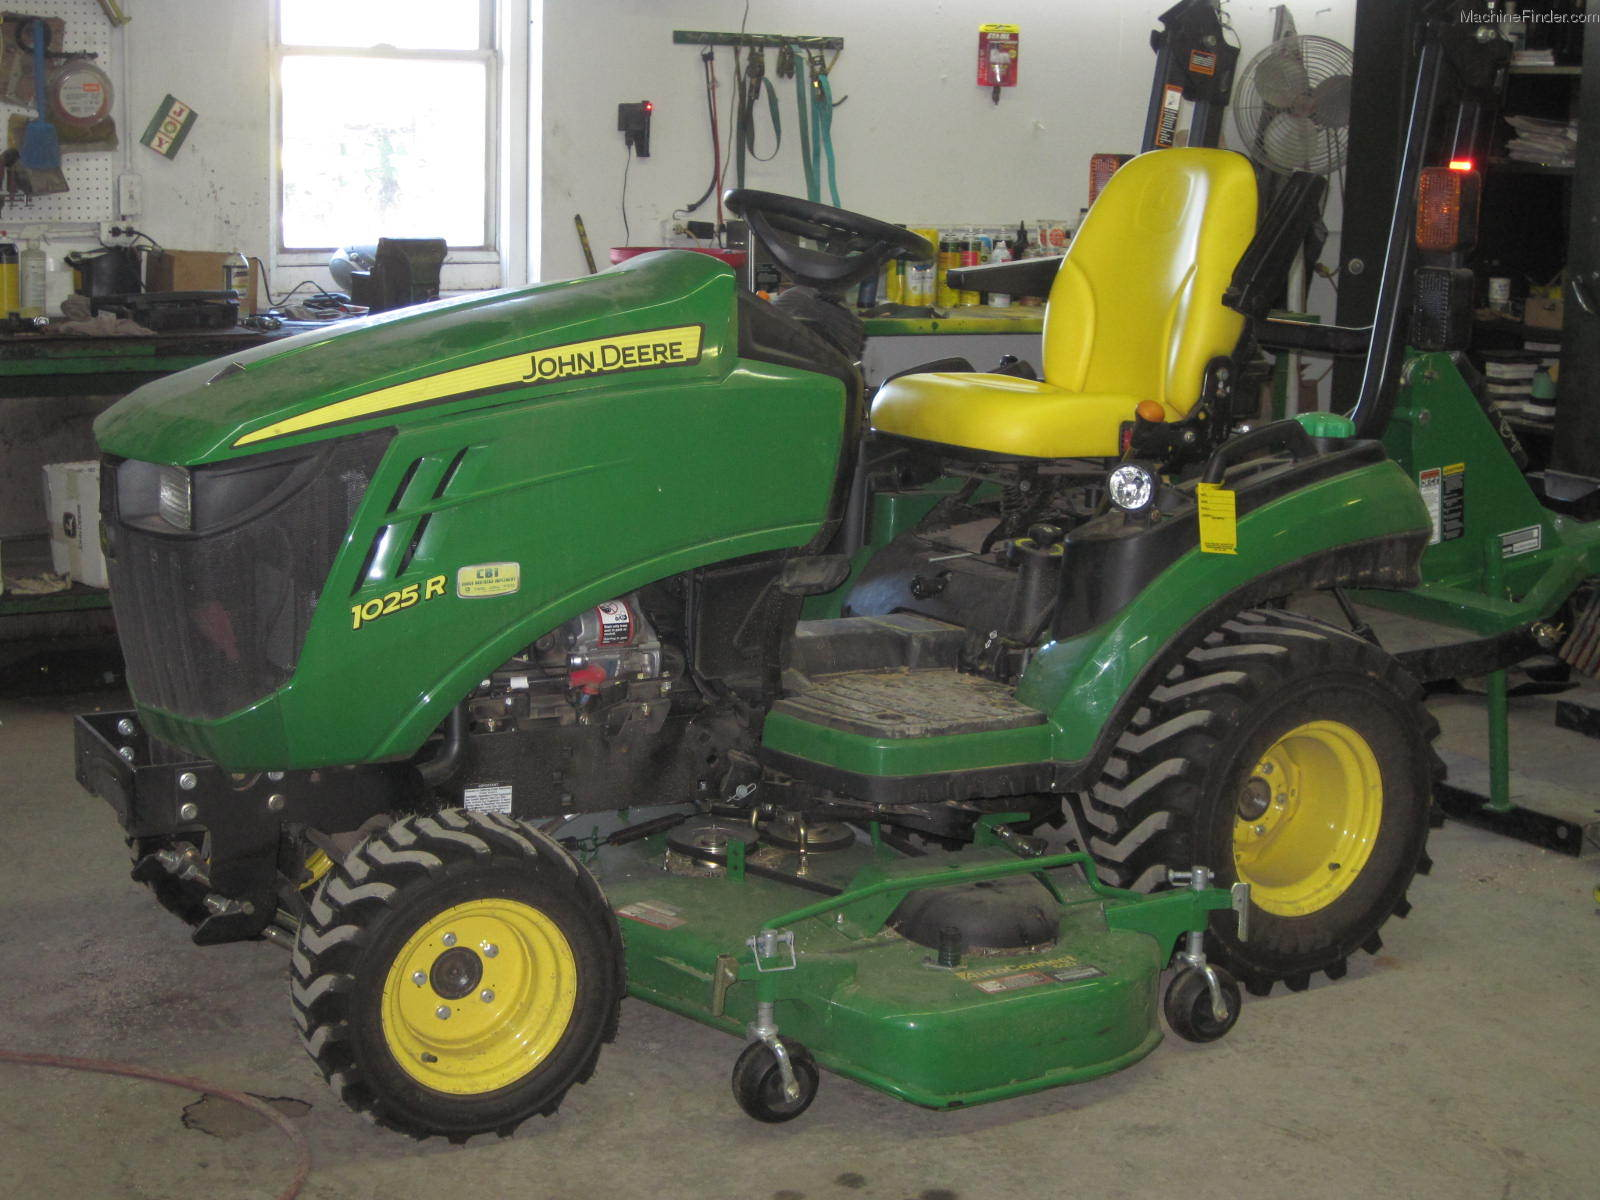 312e also New vehicle detail in addition 1025 John Deere Engines Oils as well Pins And Bushings Tractor also Farmall Cub Wiring Harness Replacement. on john deere yanmar engine parts